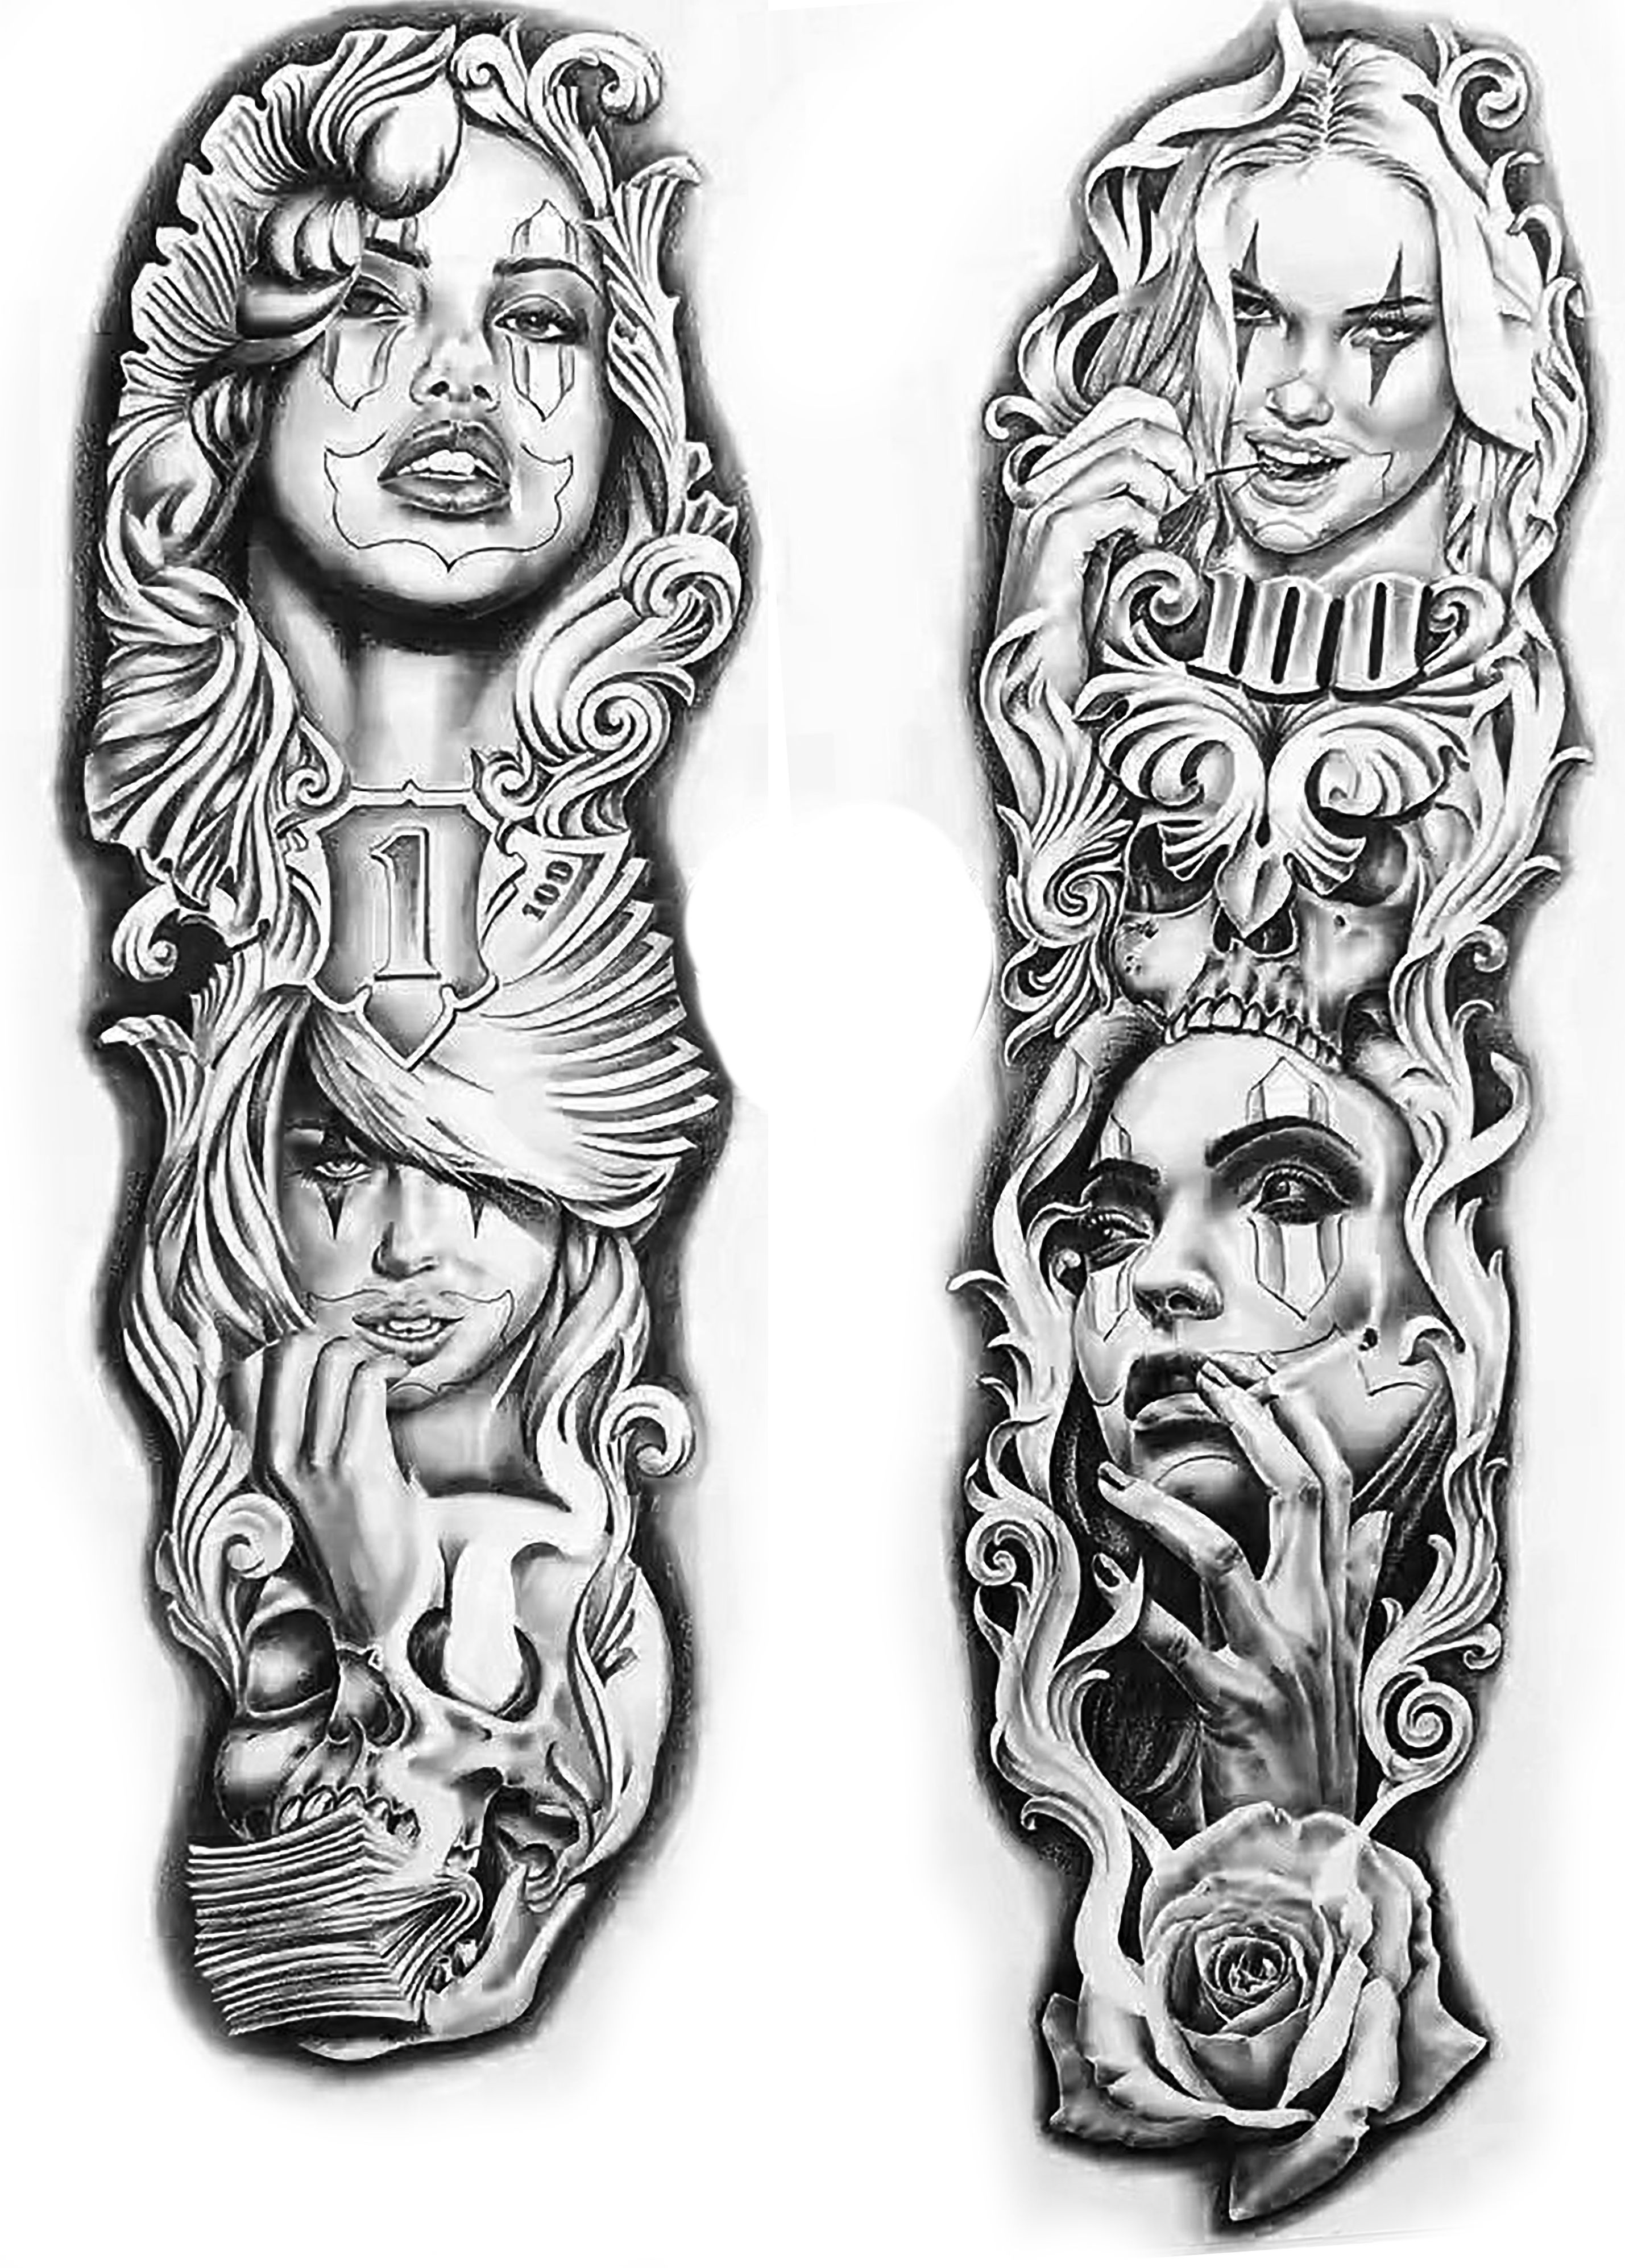 Pin By Sally Ansell On Hochu Sdelat Chicano Art Tattoos Chicano Art Chicano Style Tattoo